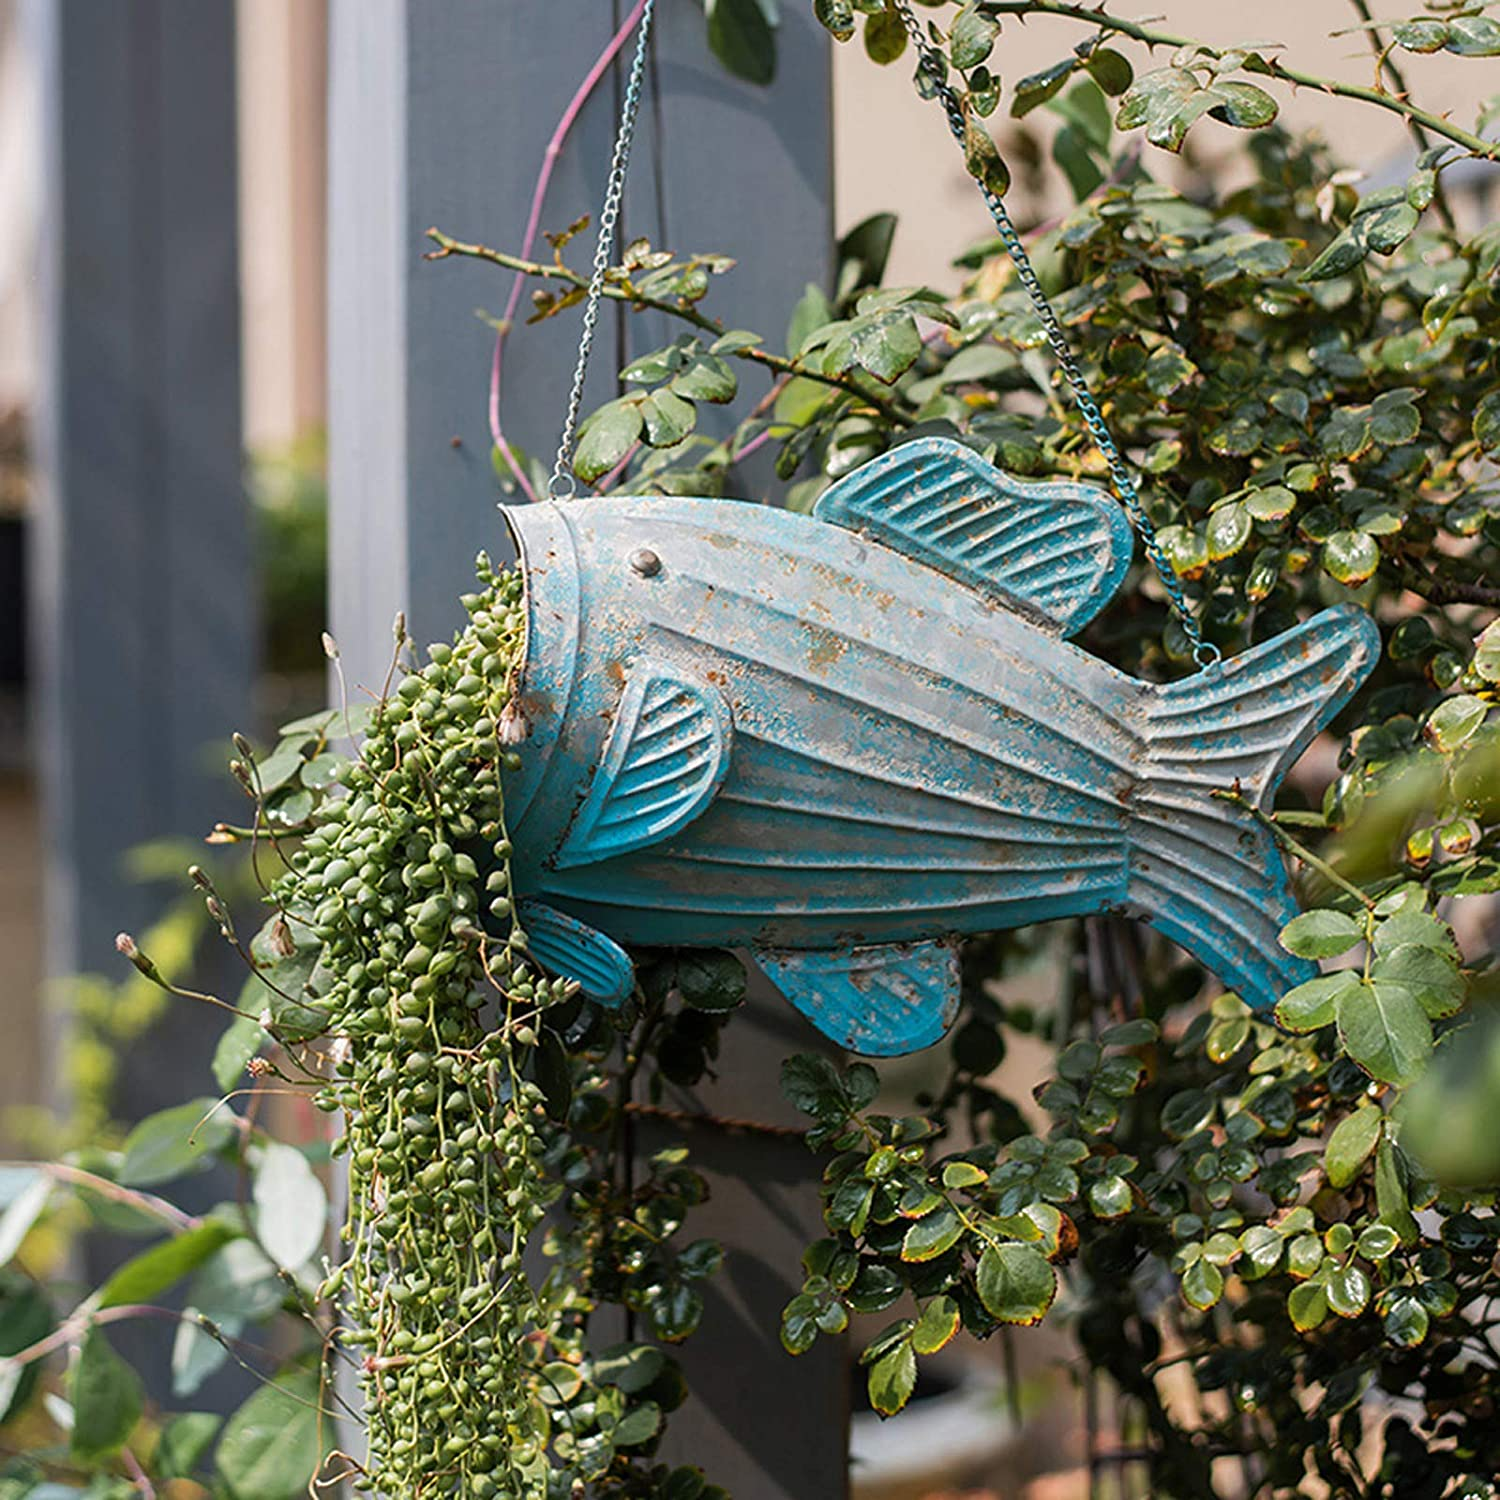 OwMell Metal Fish Hanging Planter Flower Pot Plant Hanger with Chain Wall Art Decor Vintage Style Indoor Outdoor Garden Decoration